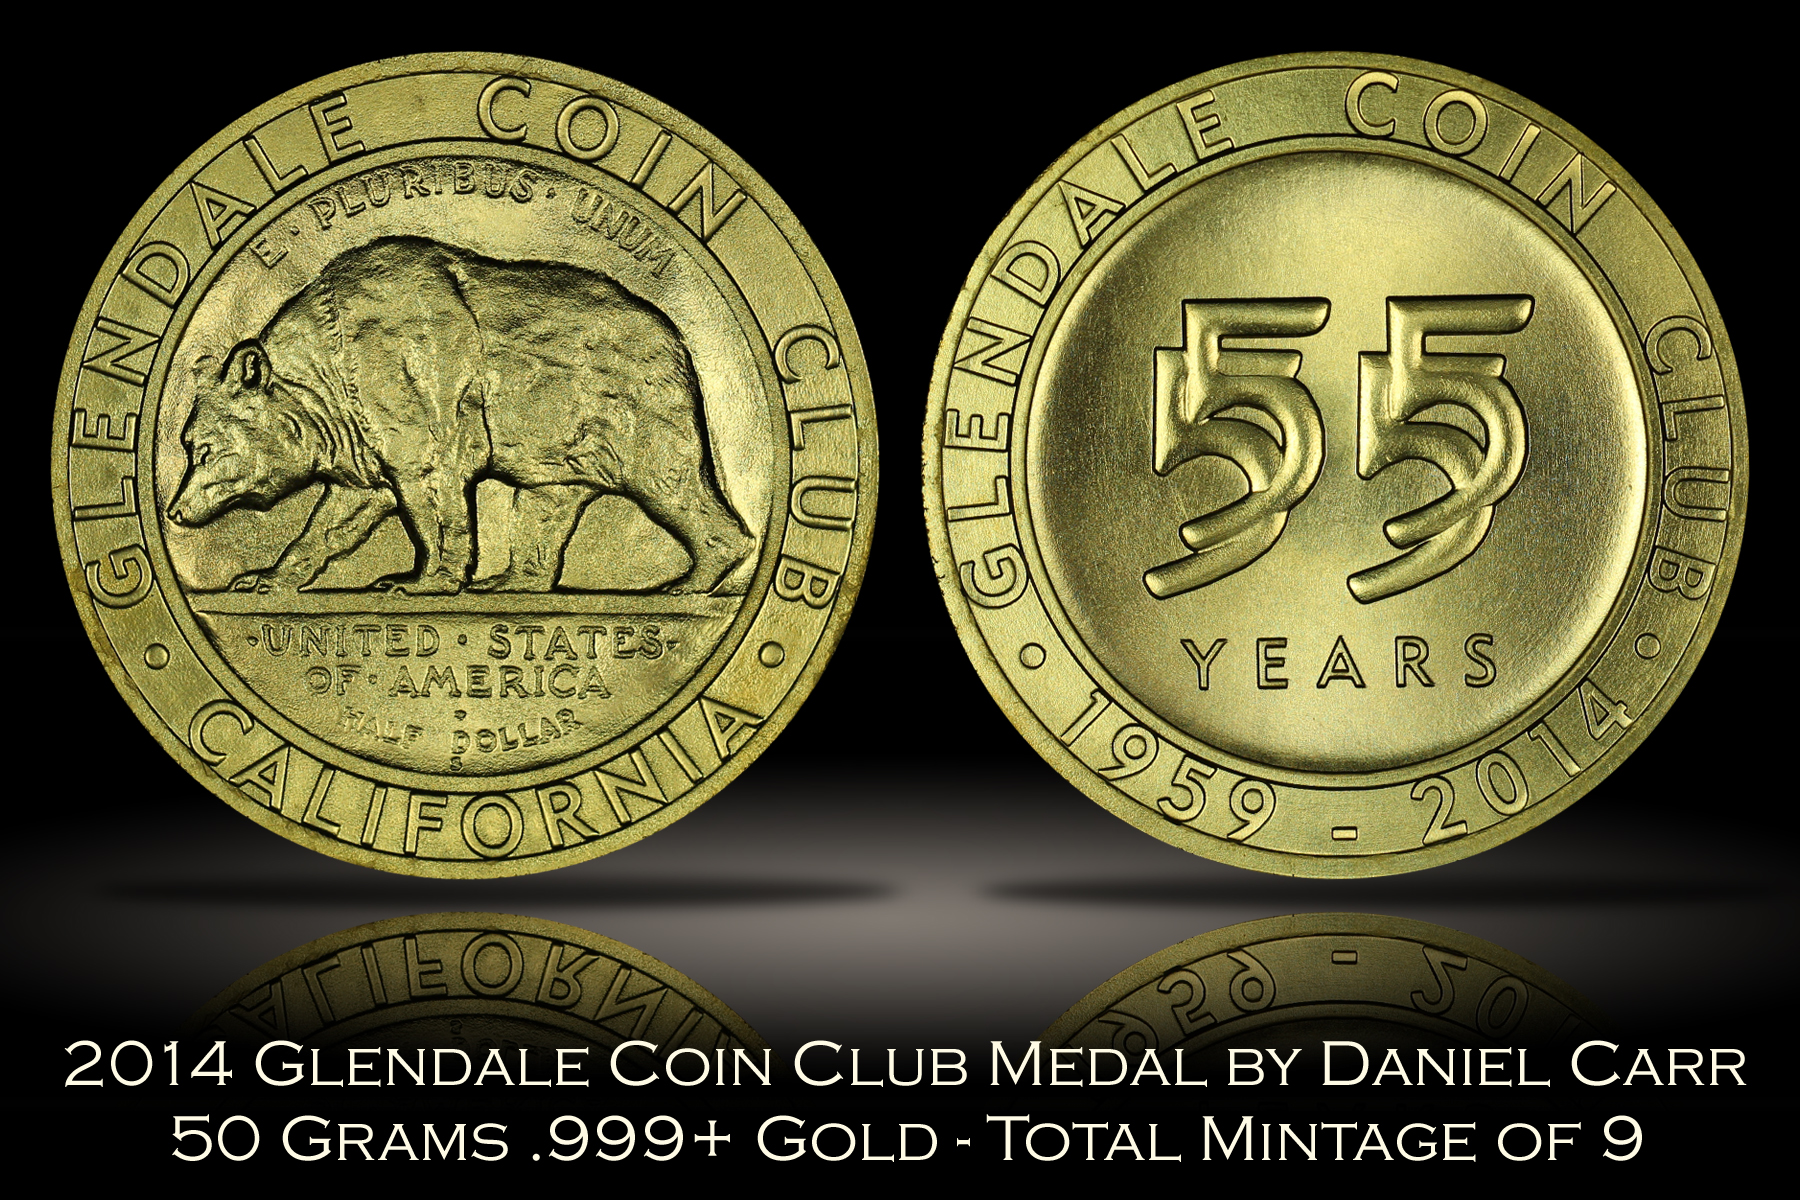 2014 Glendale Coin Club Gold Medal by Daniel Carr